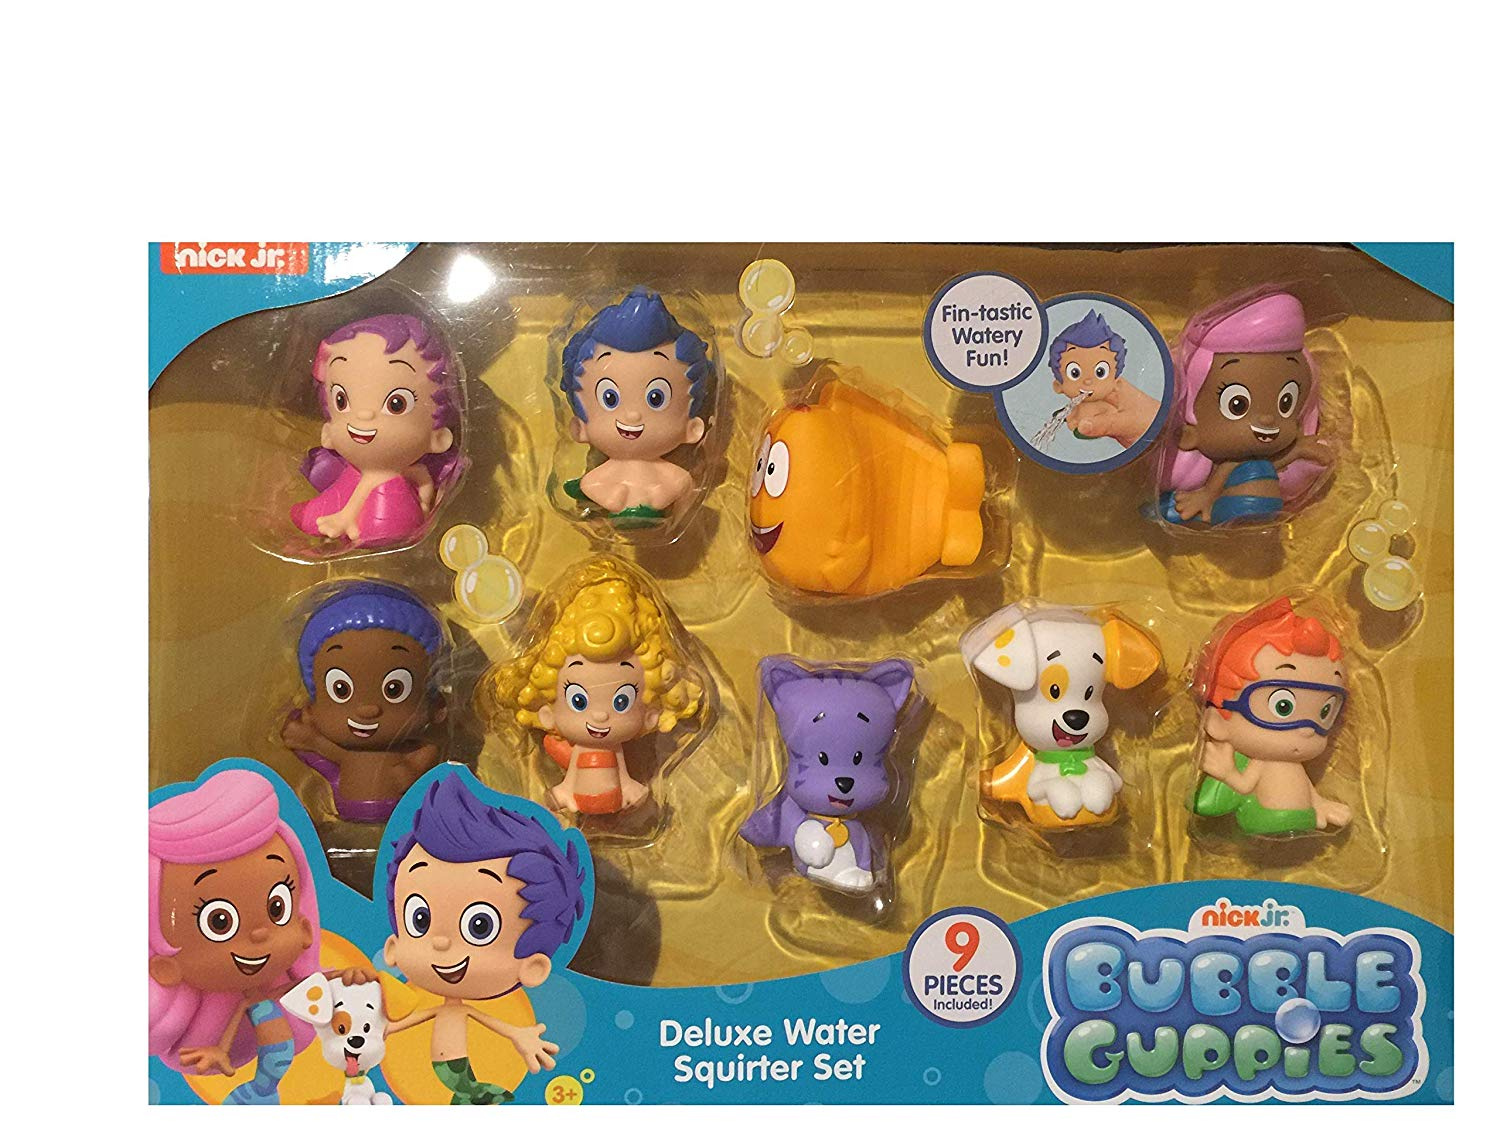 bubble guppies nick jr deluxe water squirter set by bubble guppies rh fishpond com au